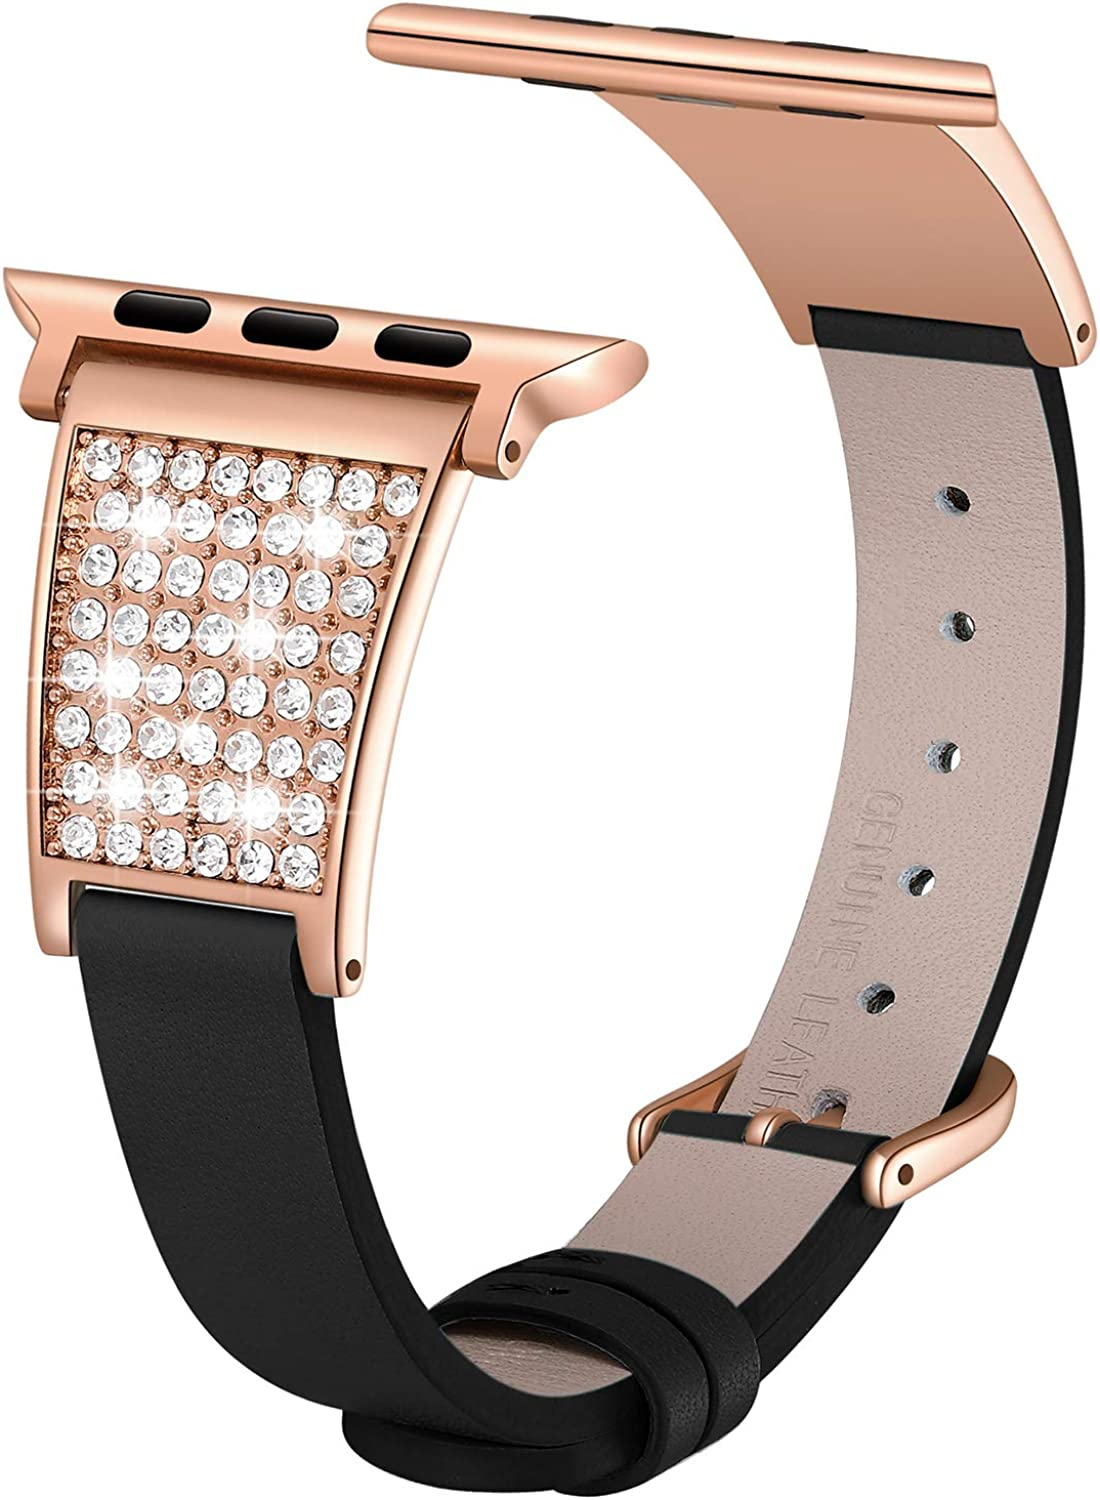 Love Lies Within Stylish Starry Sky Band Compatible for Apple Watch Bands 38mm 40mm 42mm 44mm Bling Genuine Leather Replacement Wristband for iWatch SE Series 6/5/4/3/2/1 Women Girls